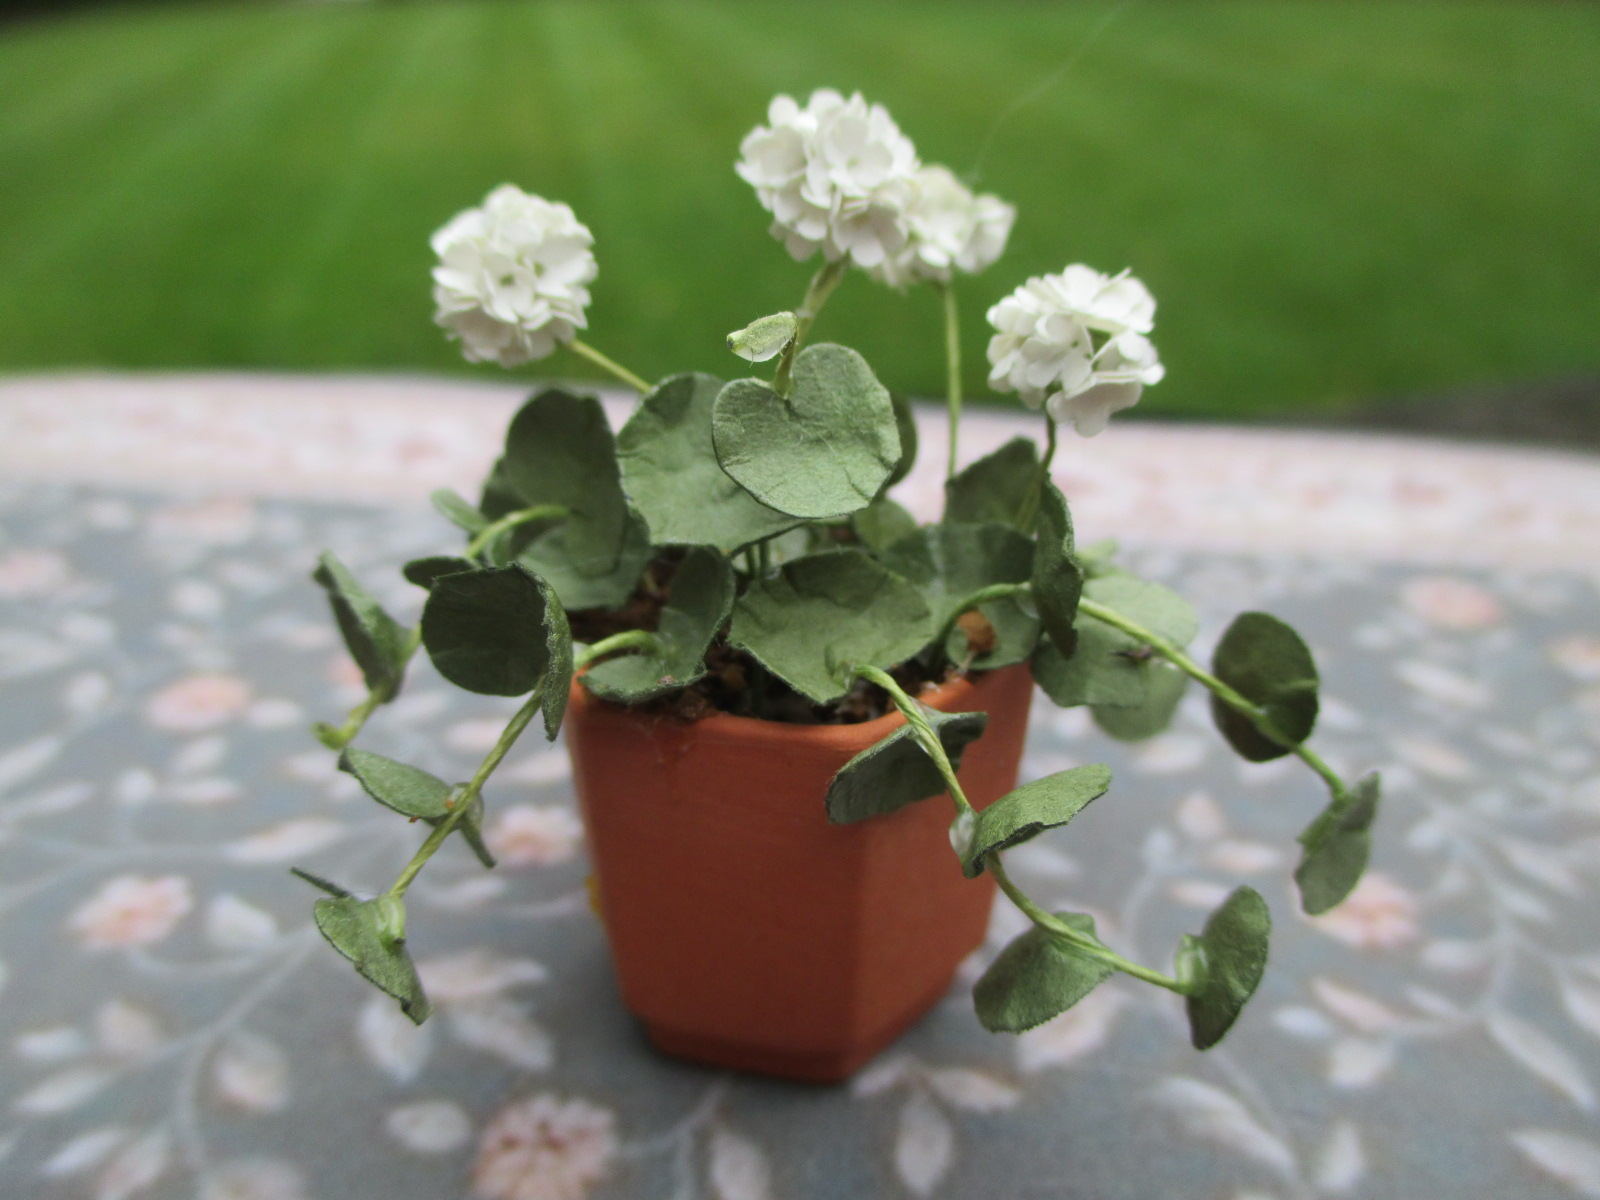 Handmade White Geranium Flowers in Terracotta Pot